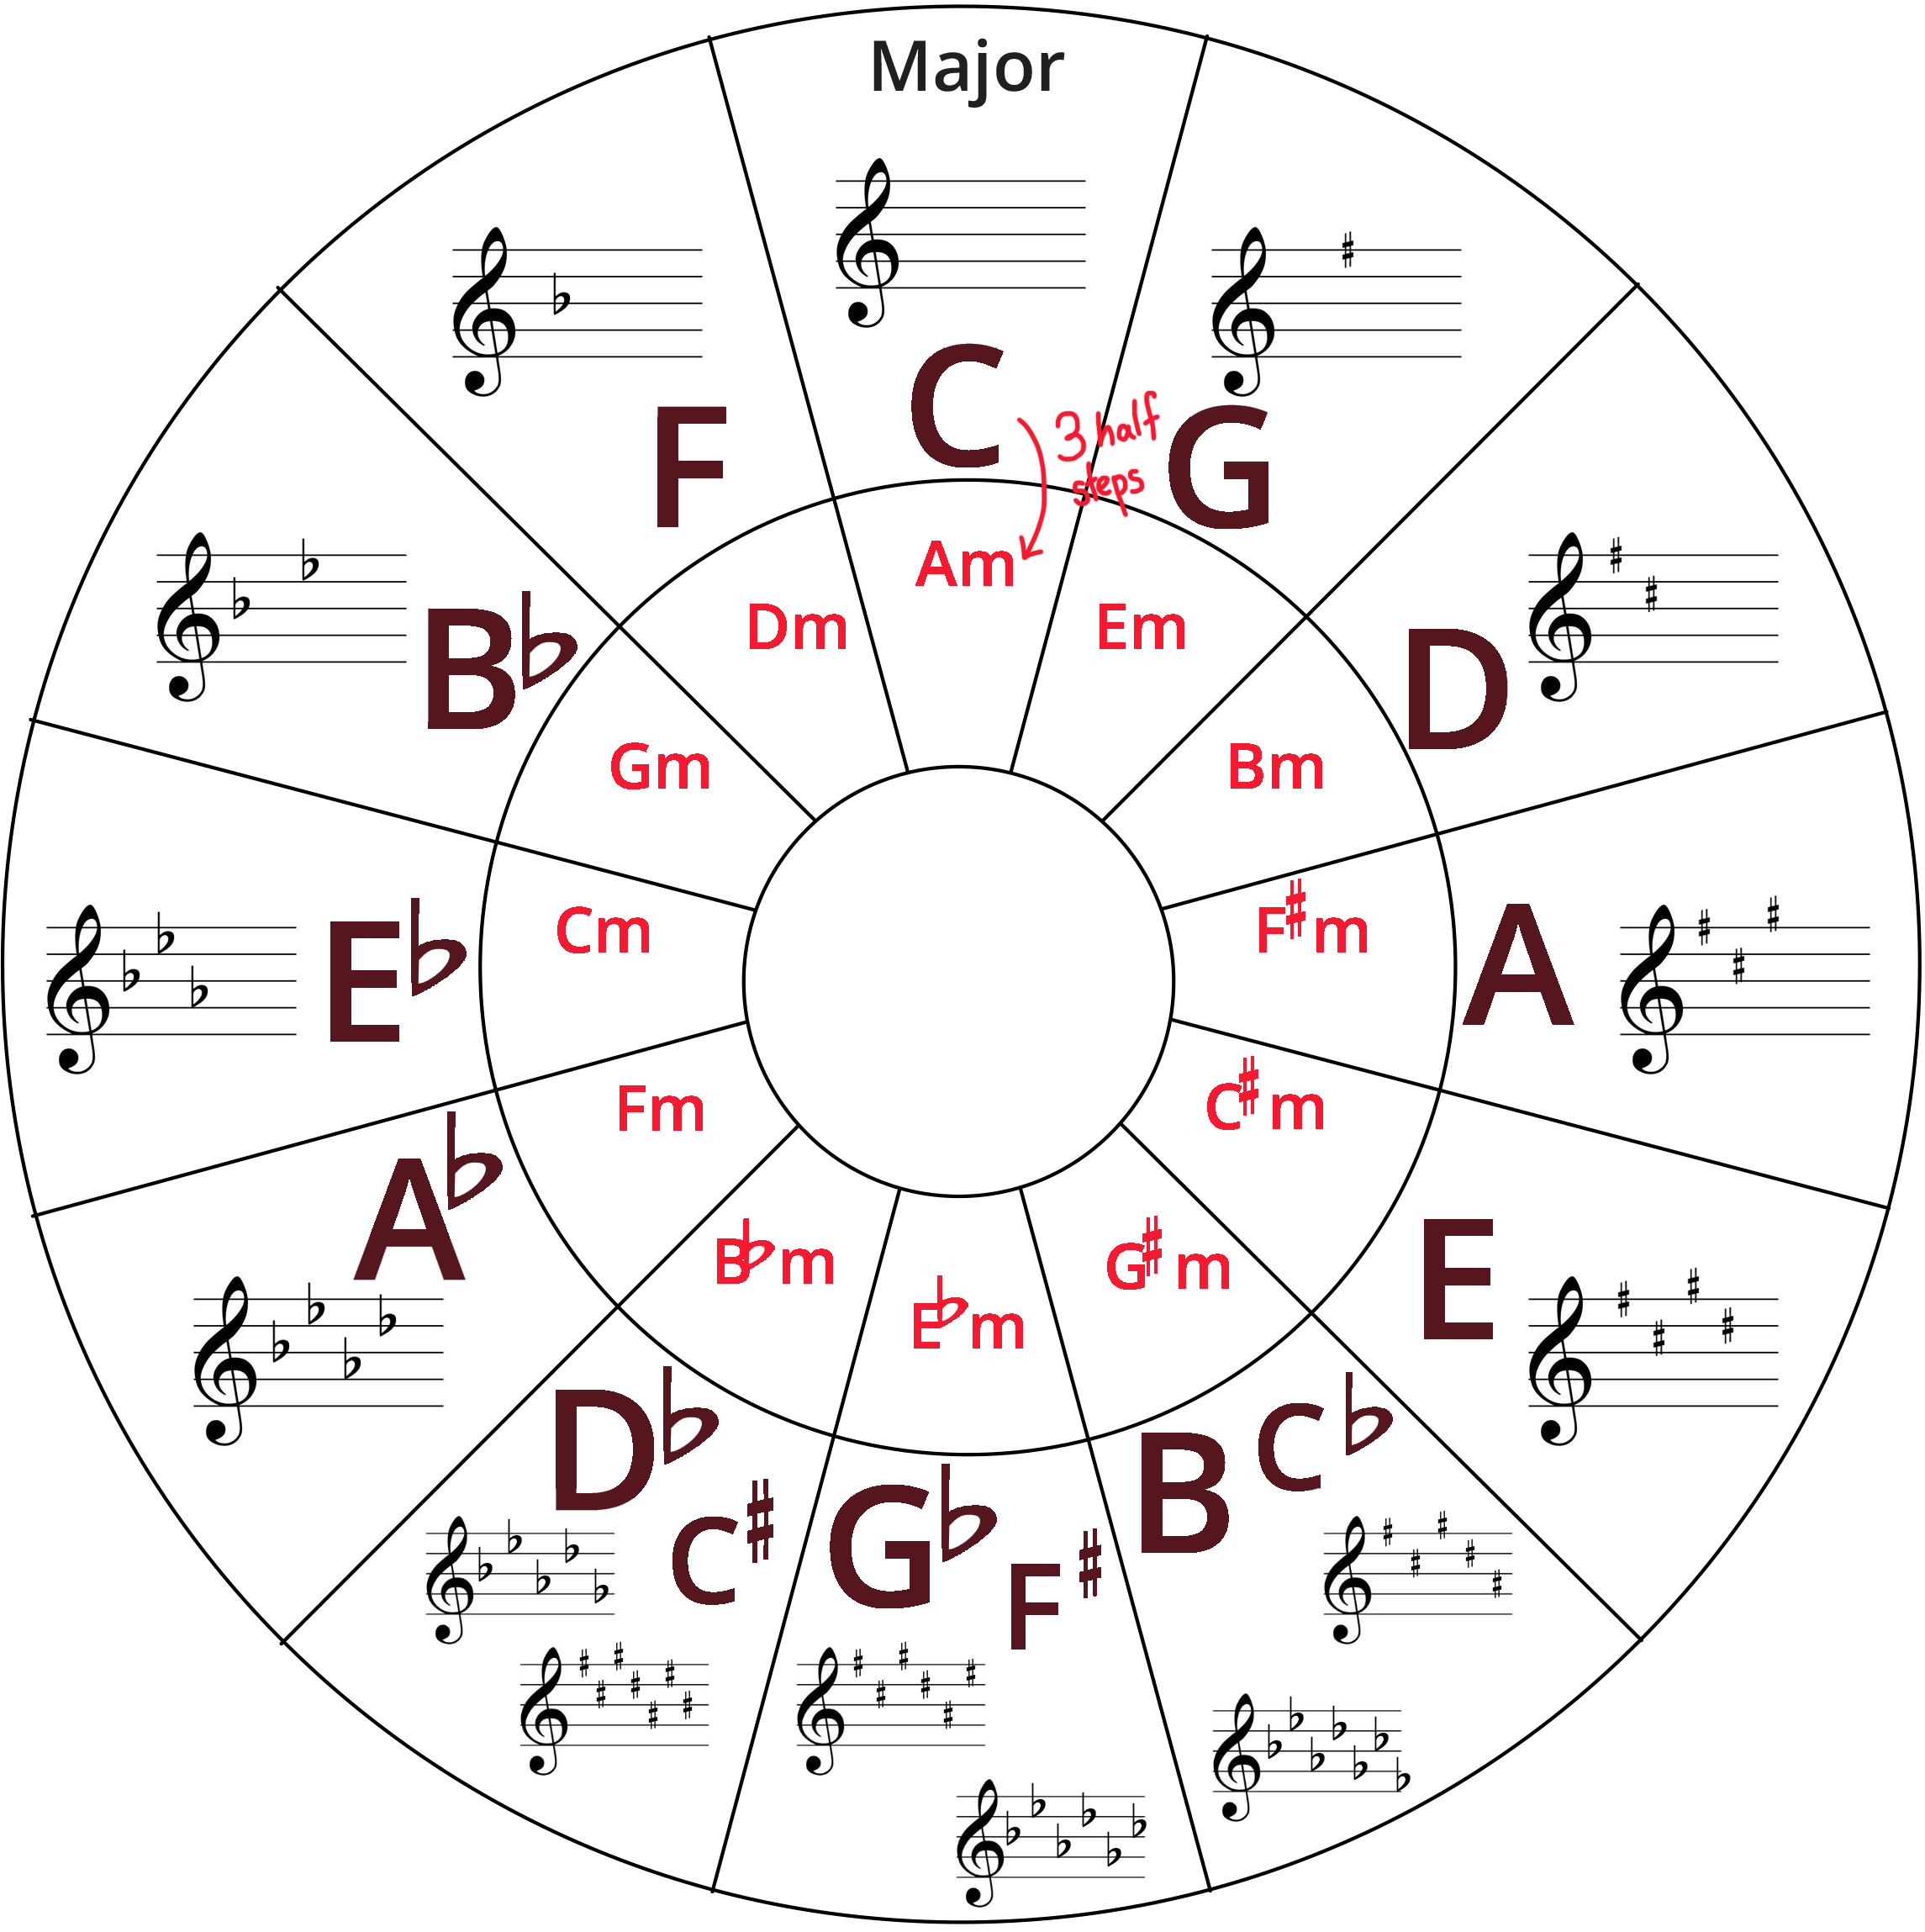 Circle of Fifths diagram with inner keys (minor) colored in red and outer keys (major) colored in burgundy.